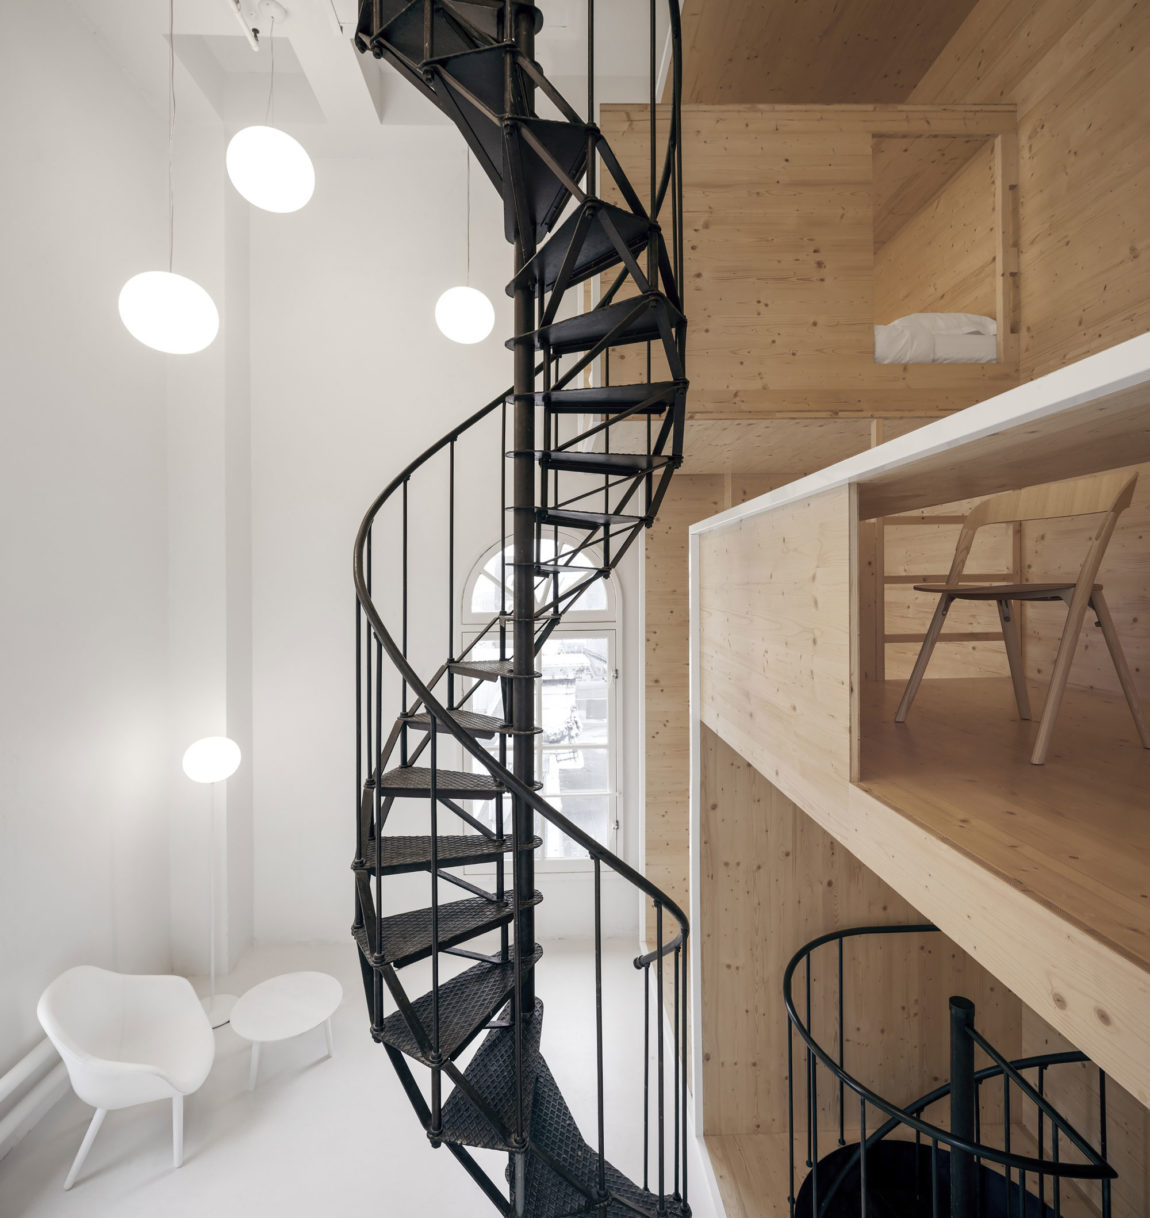 Culture 01 by i29 interior architects (4)